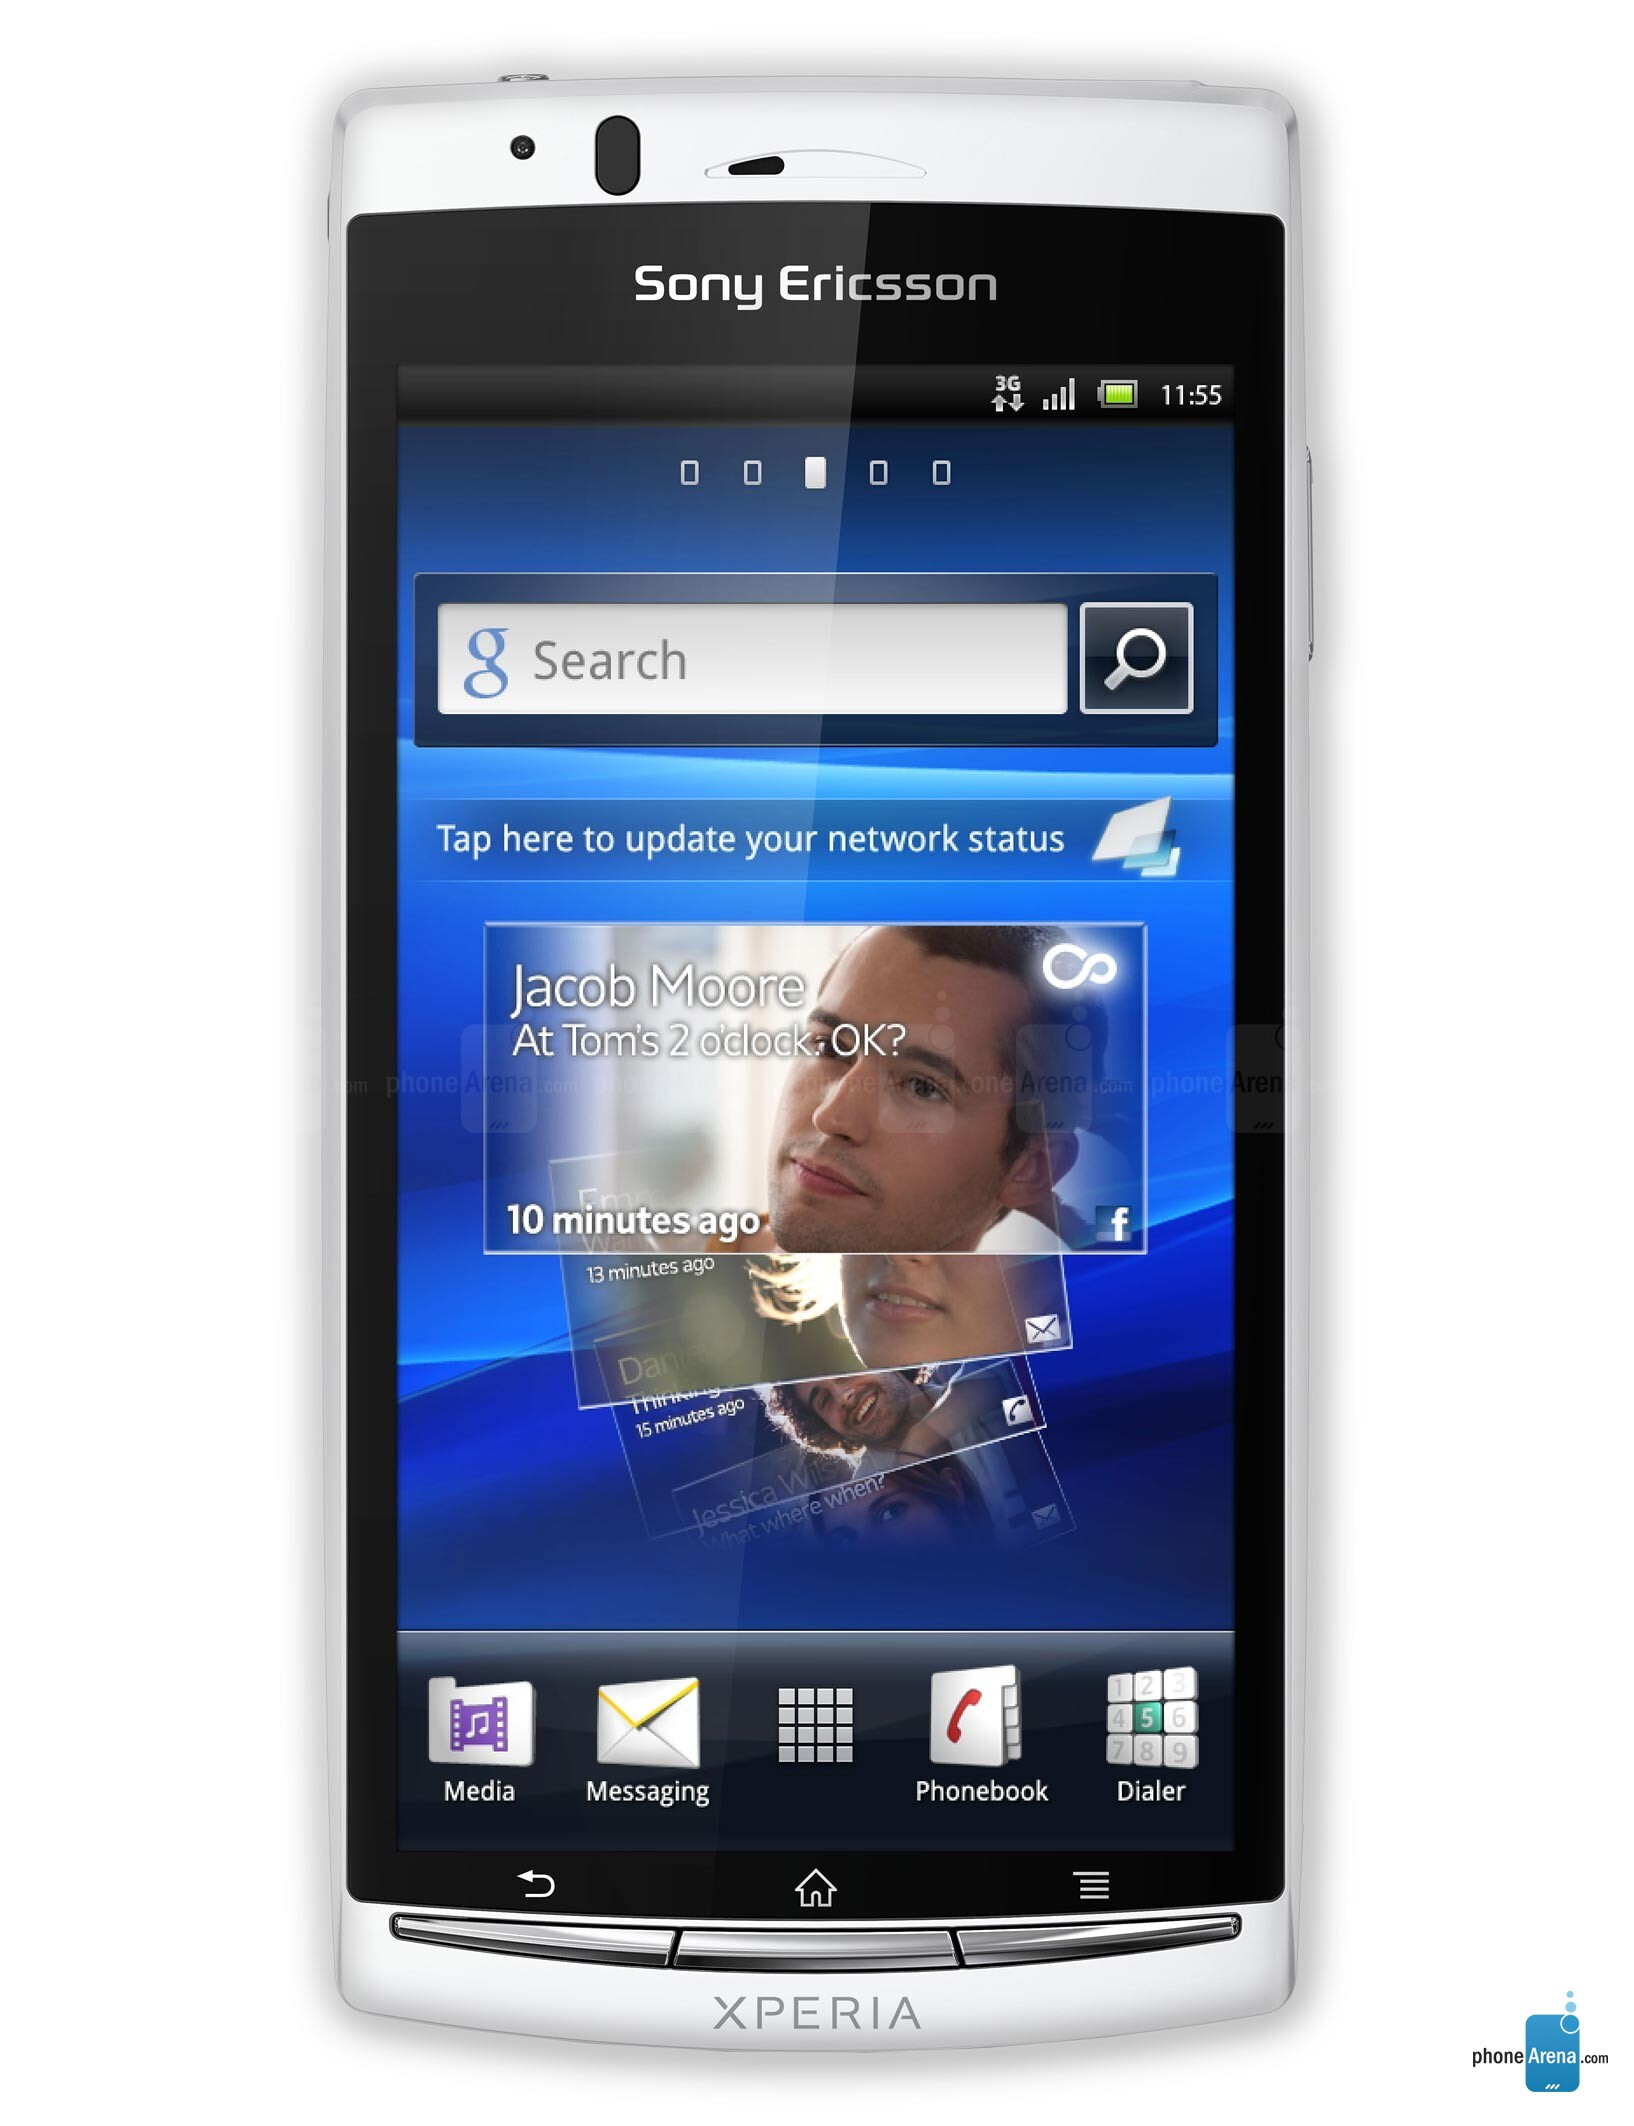 Sony Ericsson Xperia arc S Featured in Best All-in-one